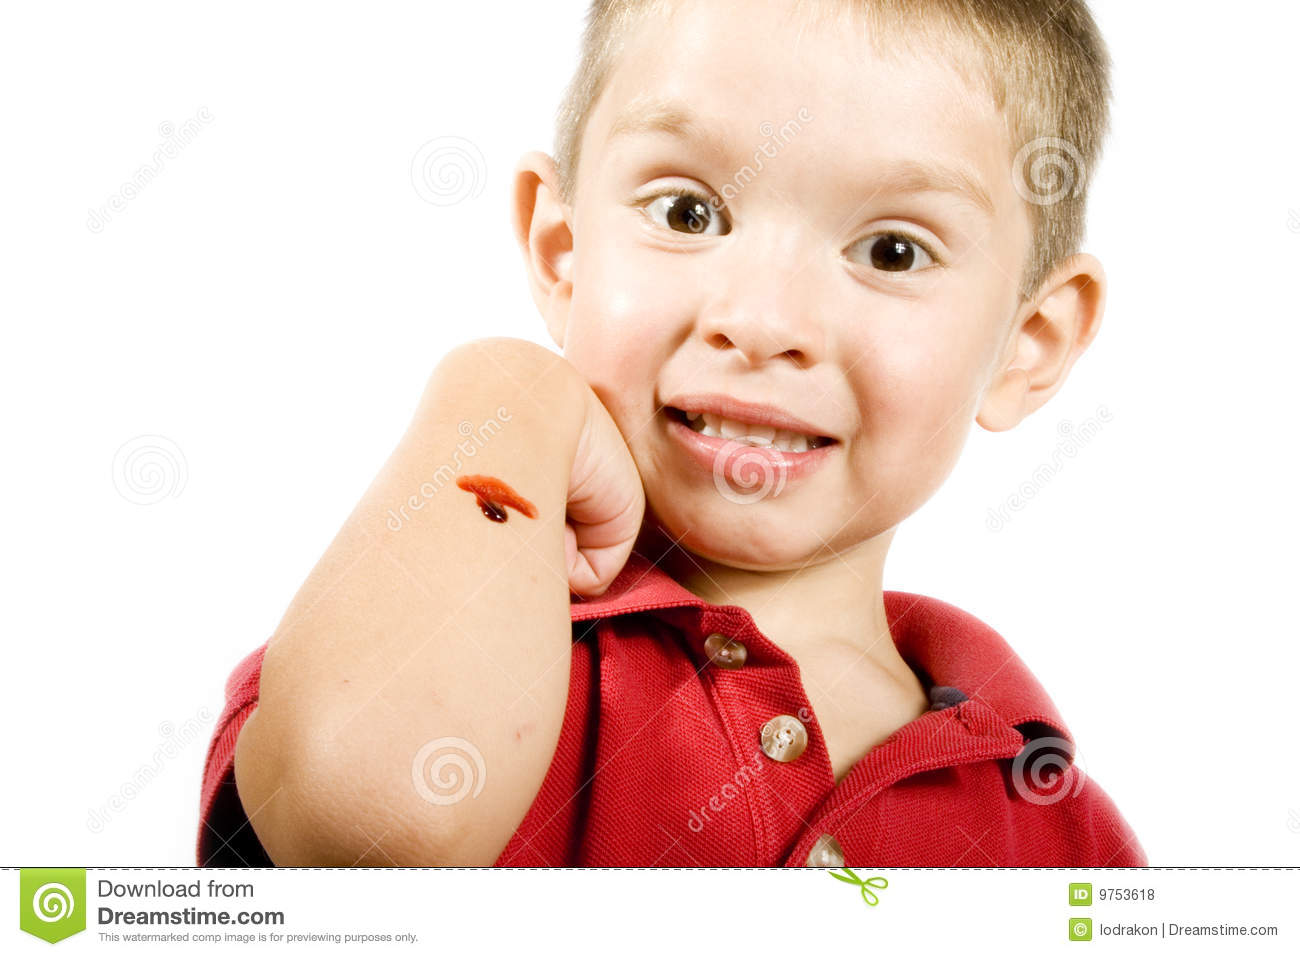 Stock image of little boy with a scrape in his arm, isolated on white.